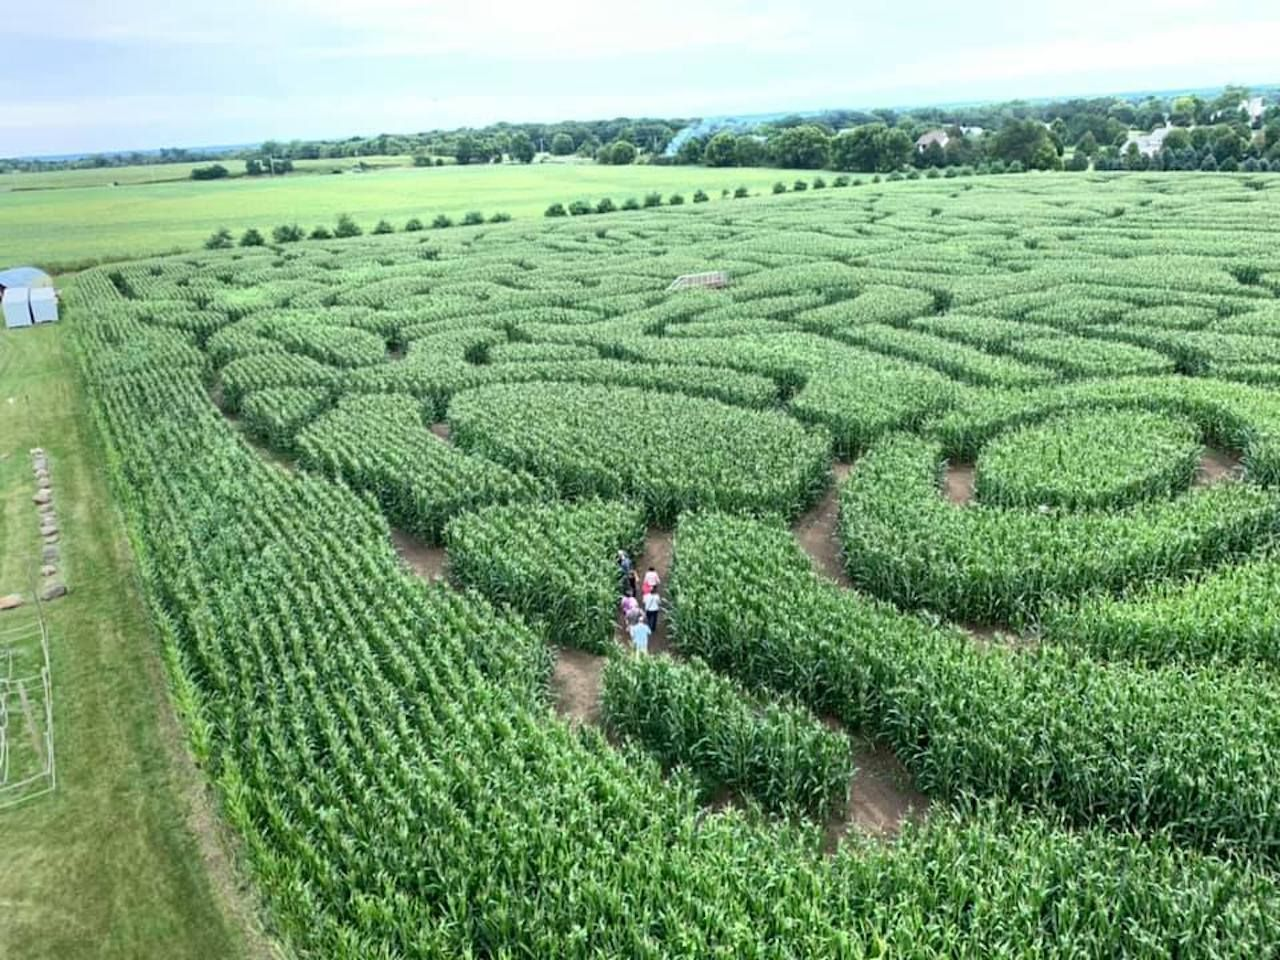 The largest corn maze in the US at Richardson Farm in Spring Grove, Illinois